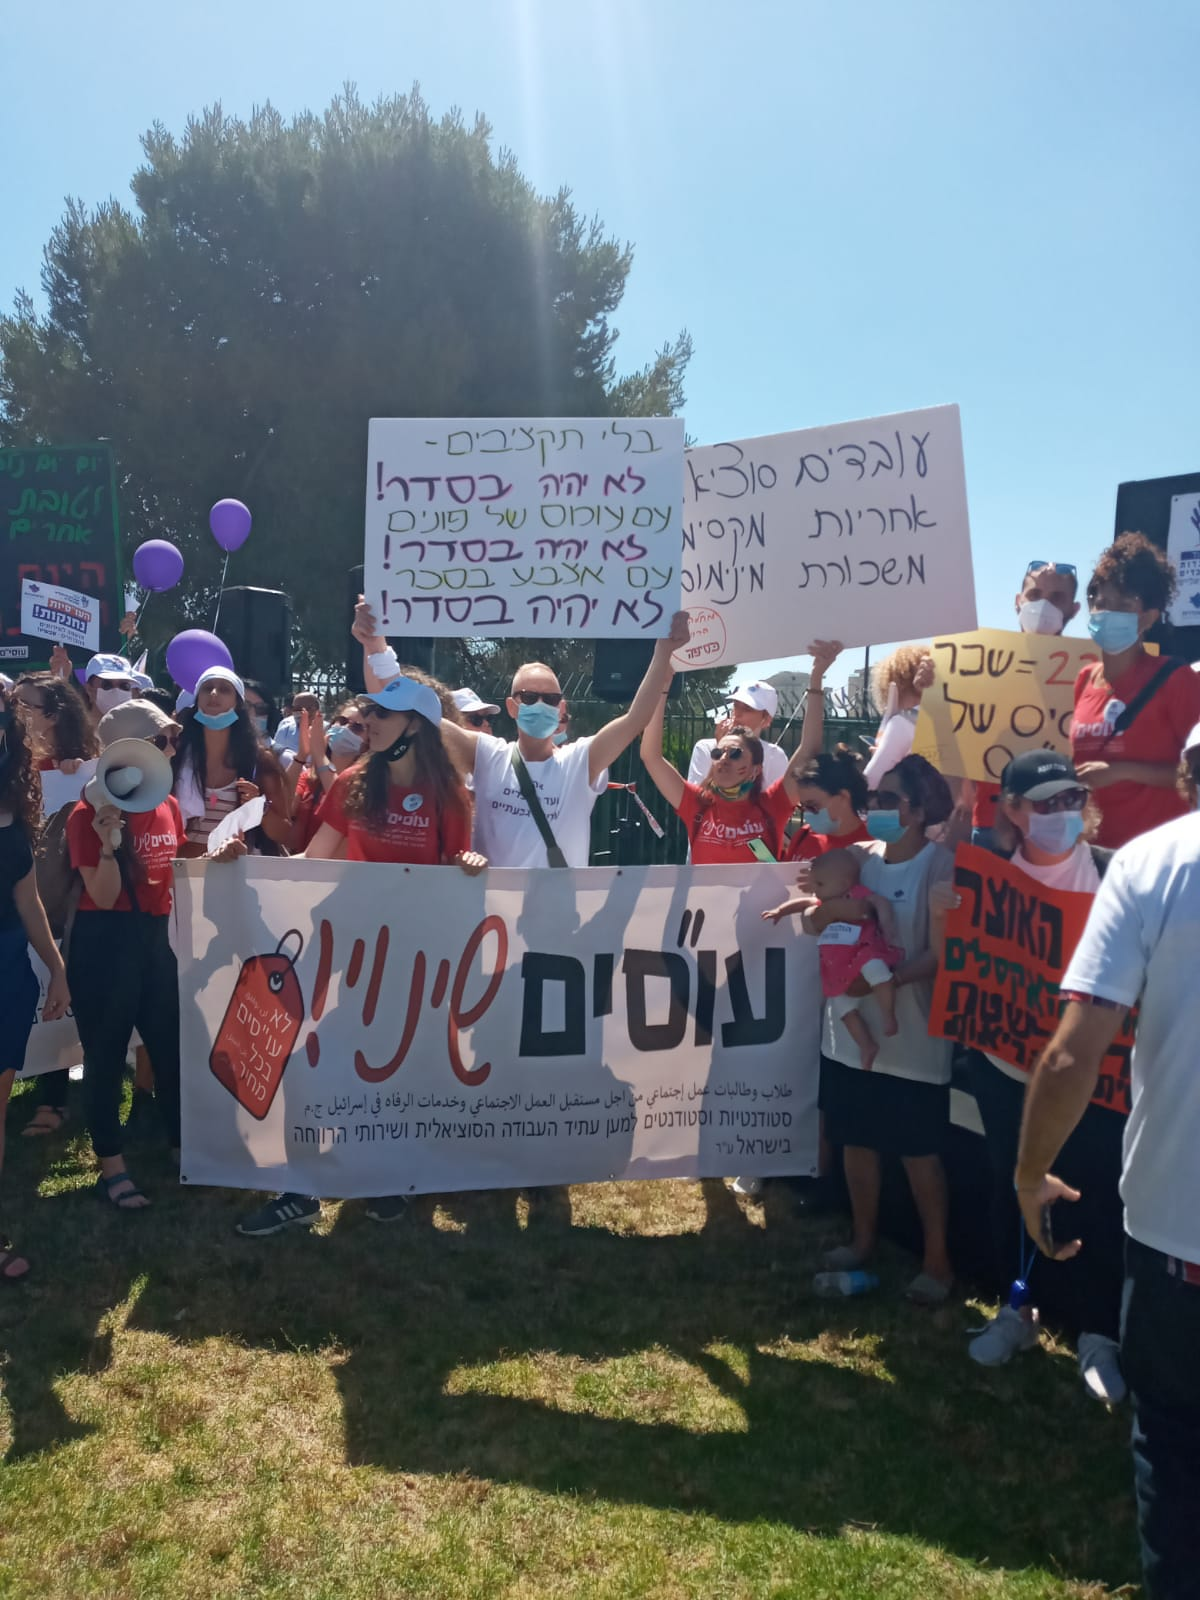 Israel's social workers are on strike; my sister is one of them